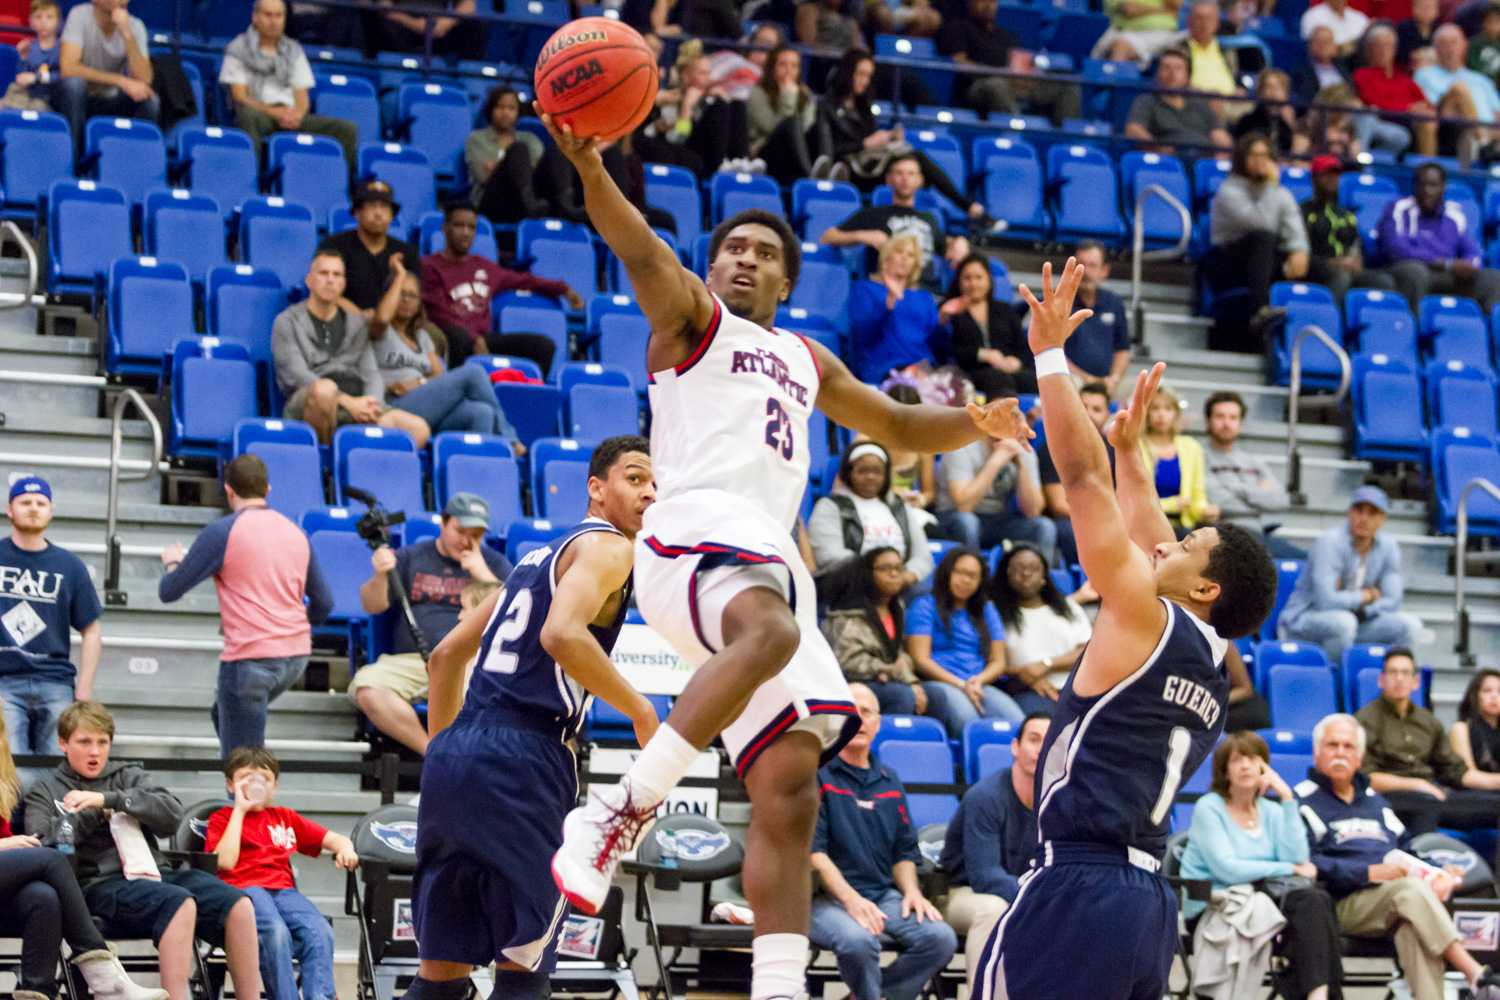 Guard Solomon Poole scored a team-leading 22 points in the Owls' loss to Rice on Feb. 21. Photo by Idalis Streat